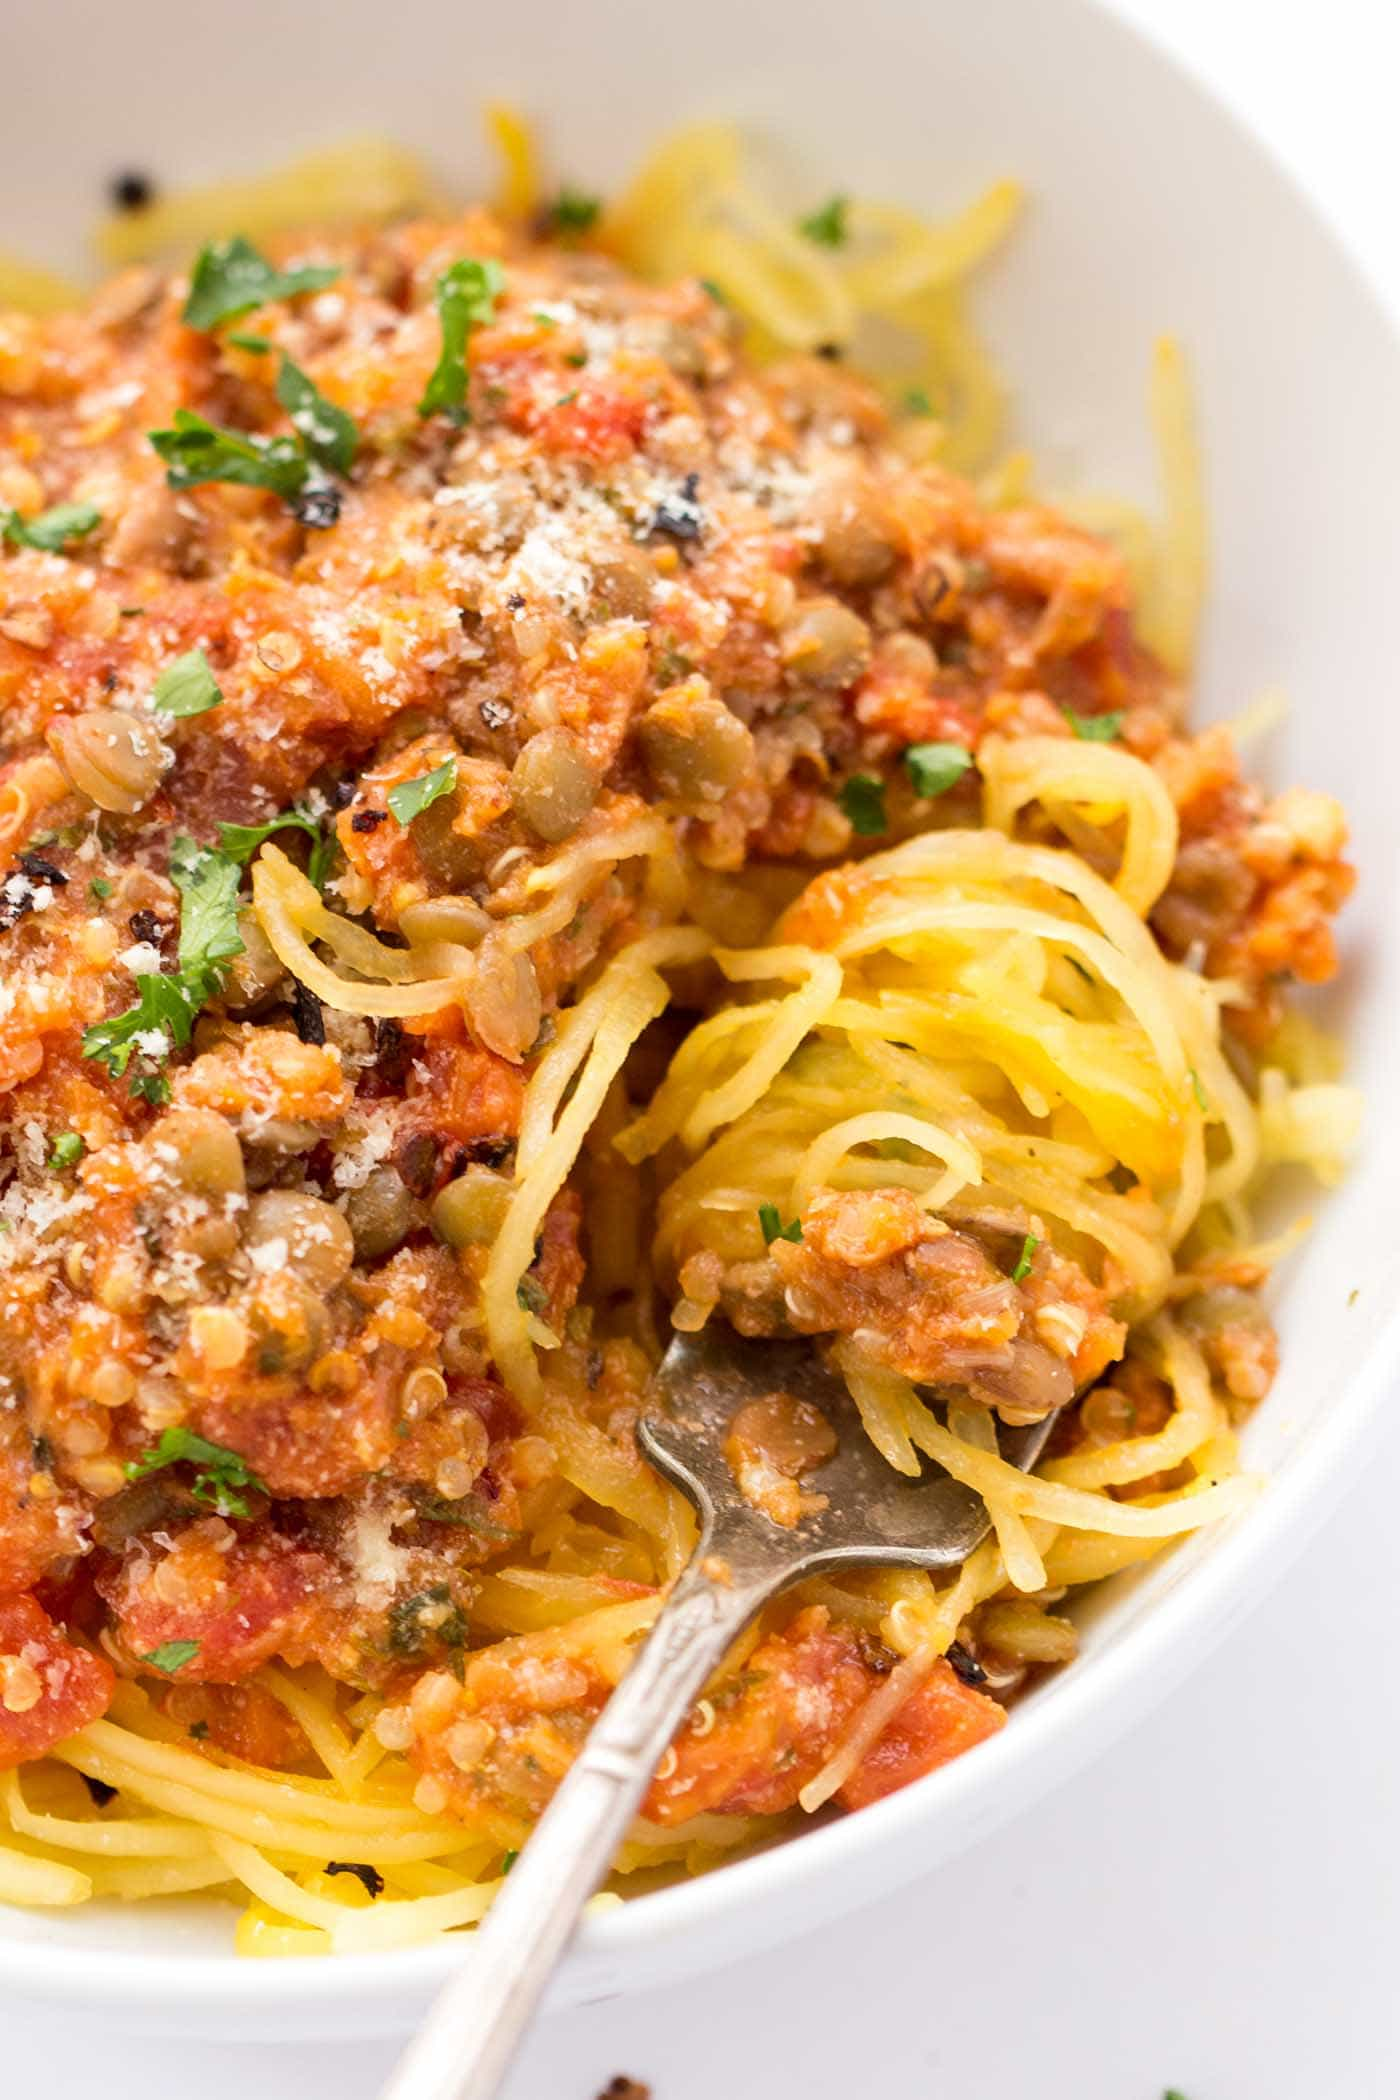 A simple meatless meal idea >> QUINOA + LENTIL BOLOGNESE (with spaghetti squash)